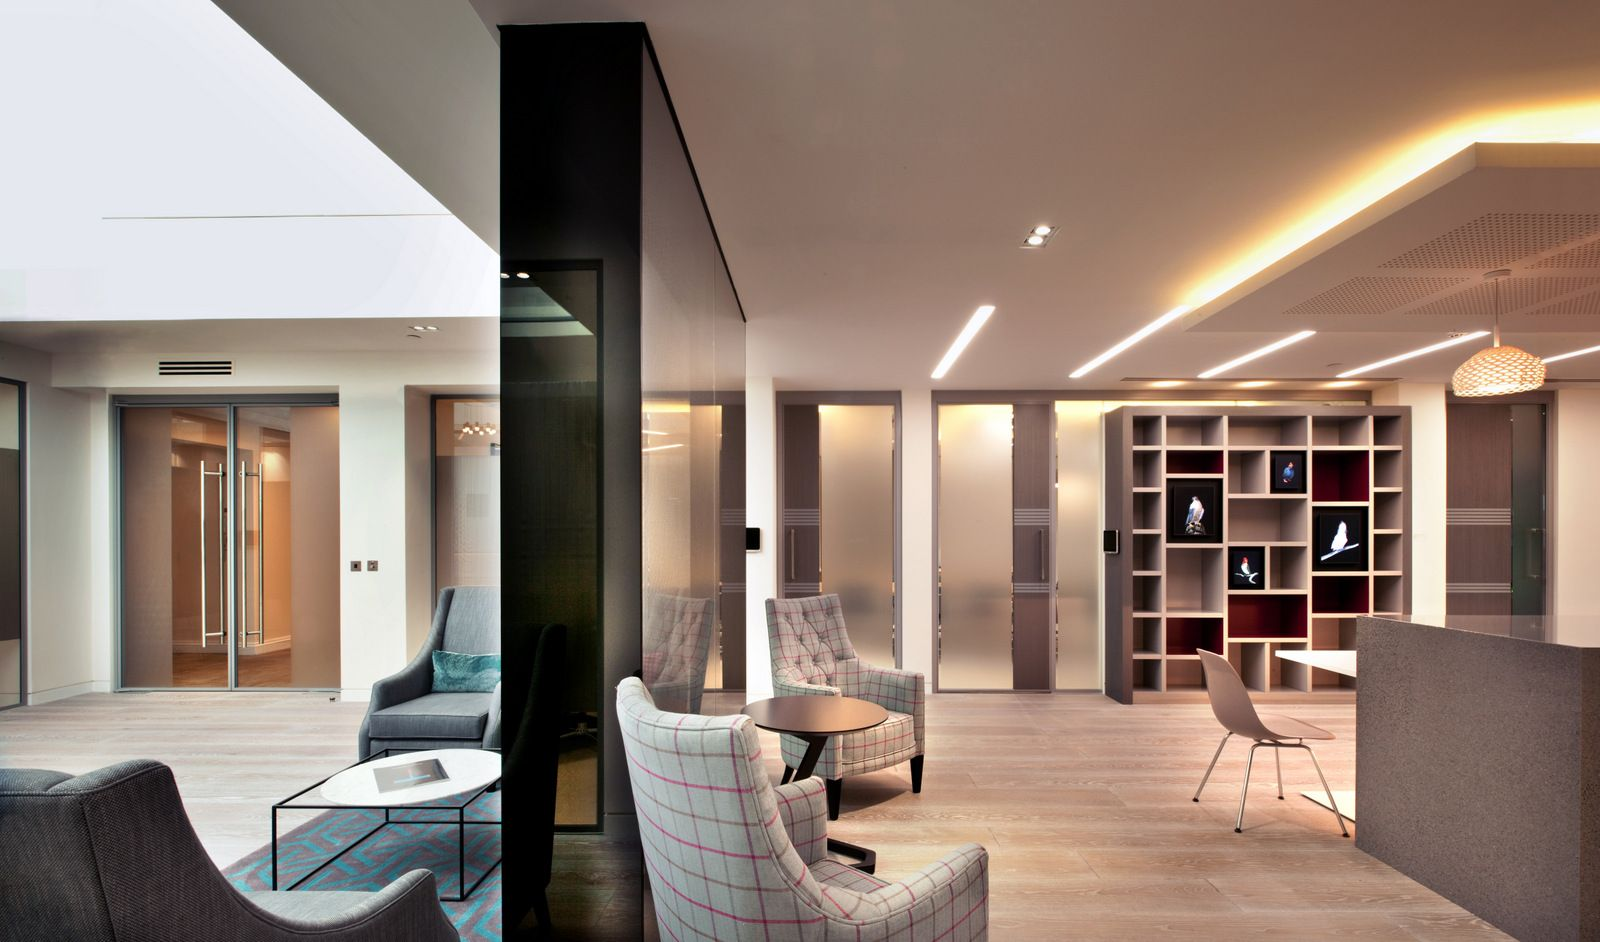 Private investment bank office design 3